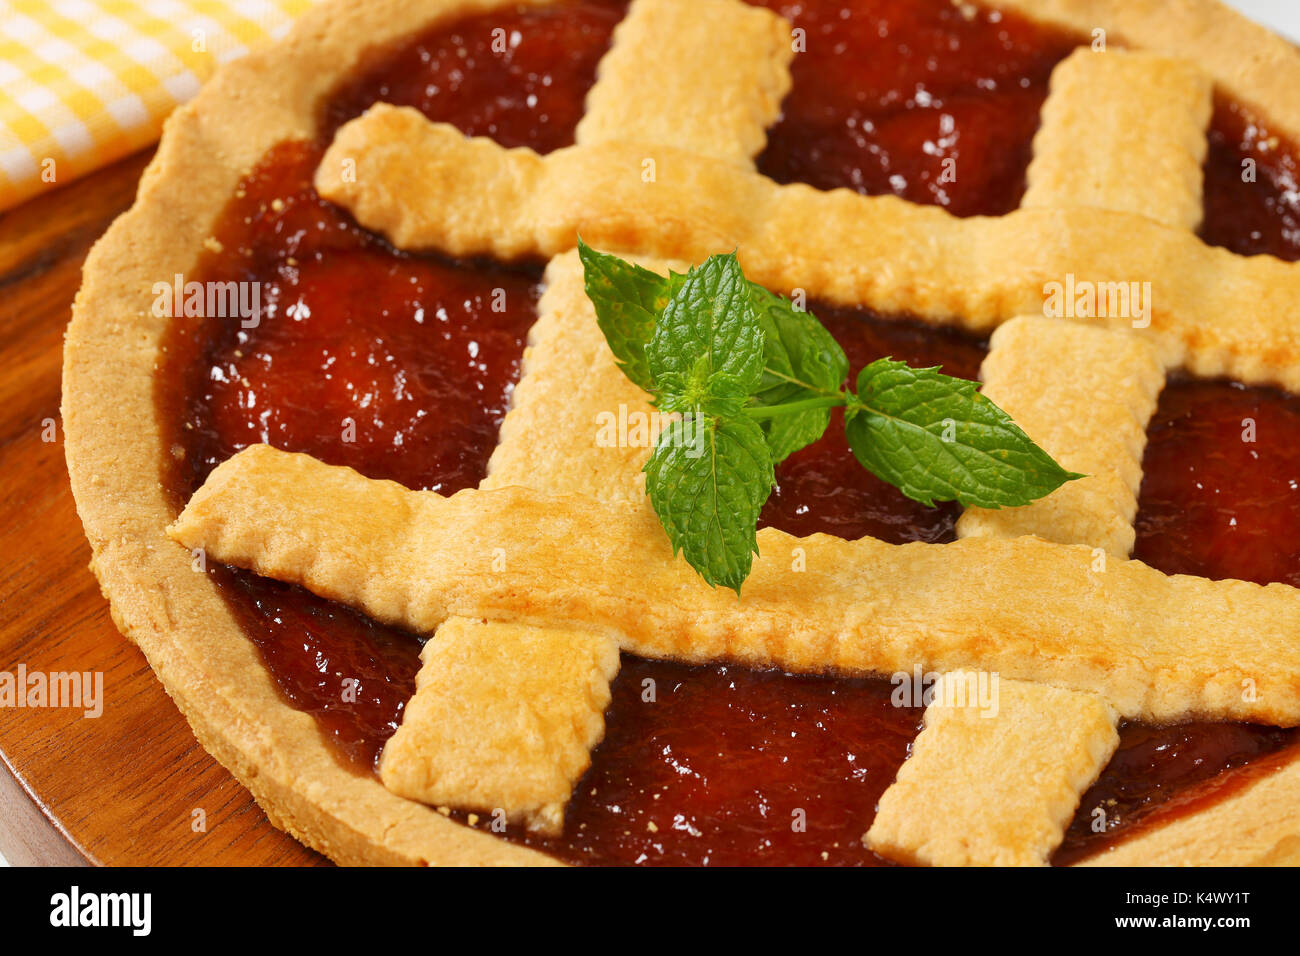 Pastry lattice stock photos pastry lattice stock images for Easy jam tarts ready made pastry